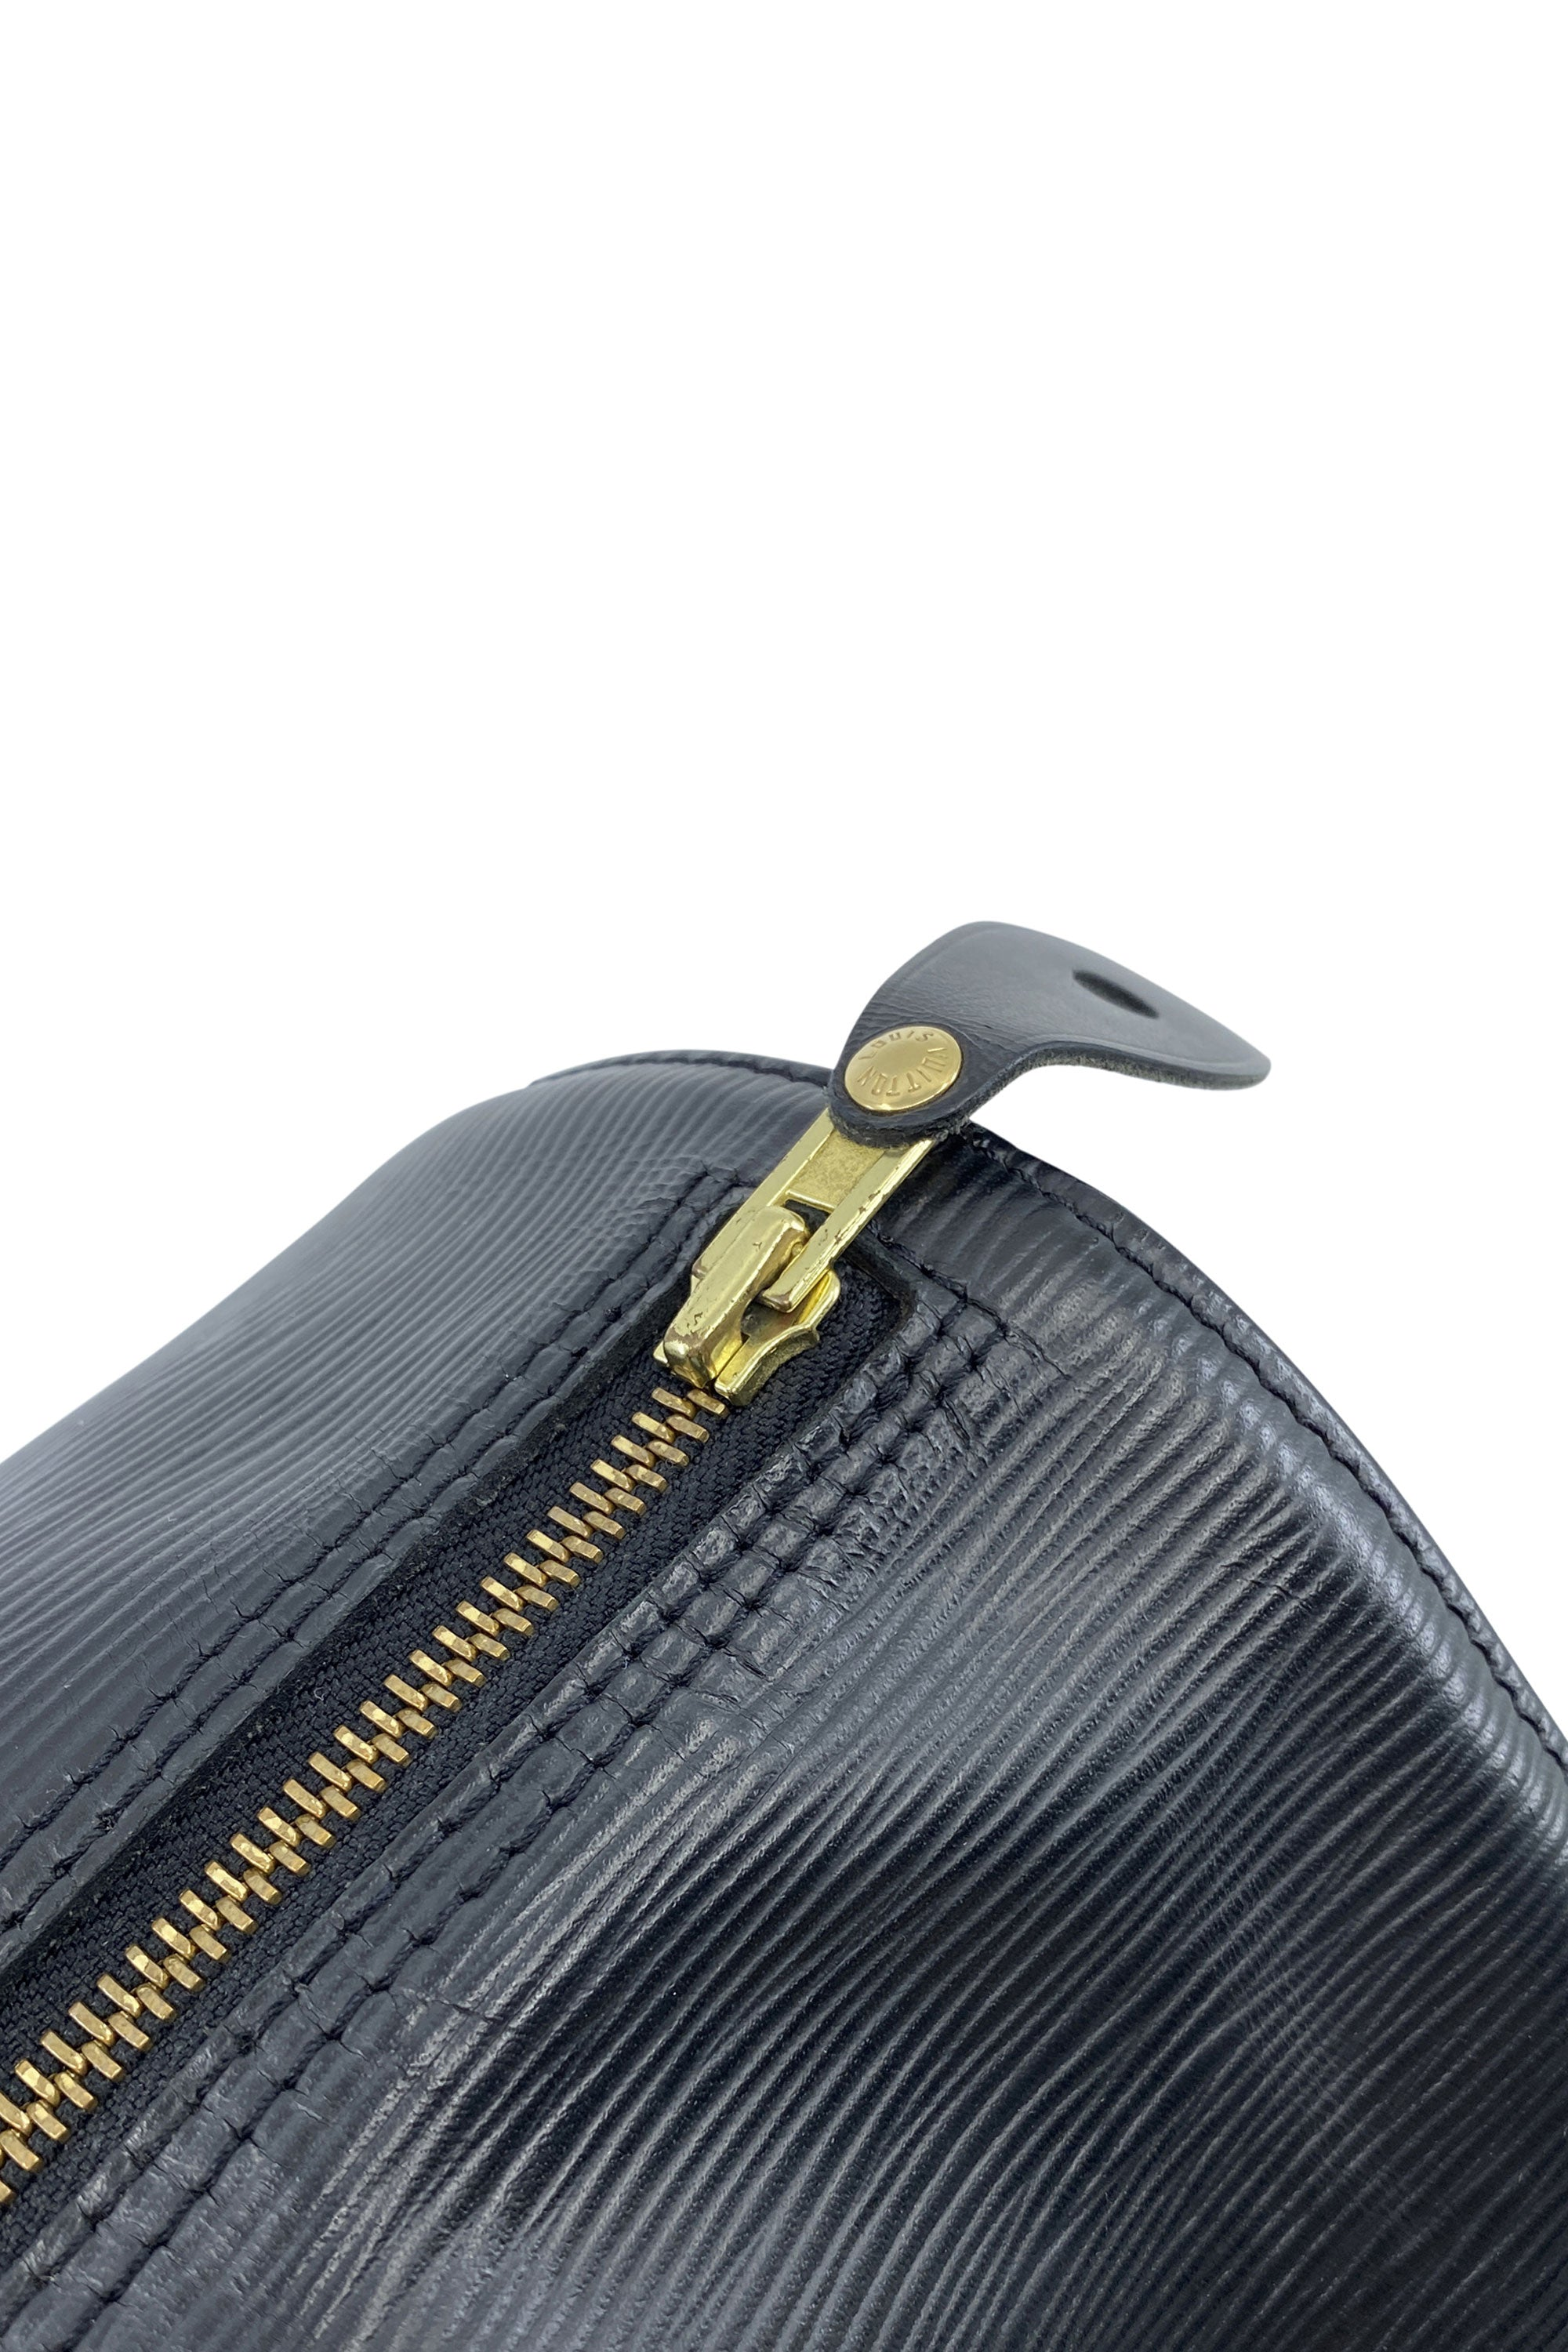 LOUIS VUITTON Speedy 30 Epi Black